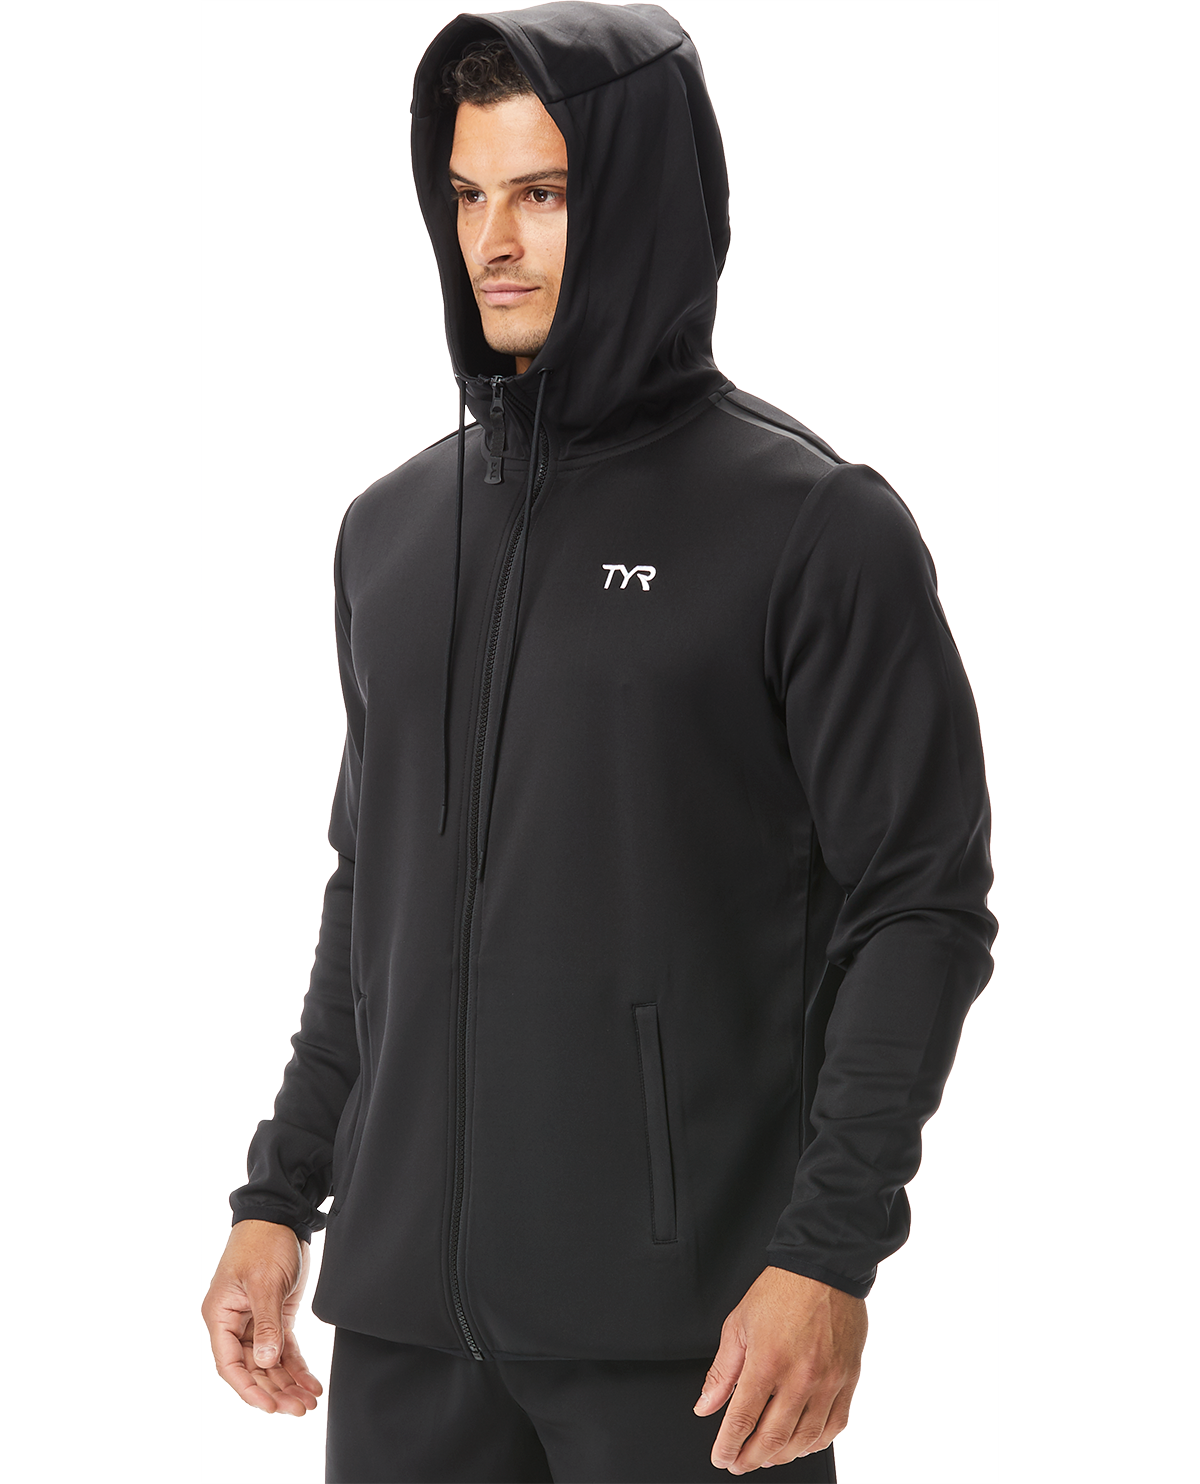 TYR Alliance Podium Full Zip Hoodie Unisex MAIN